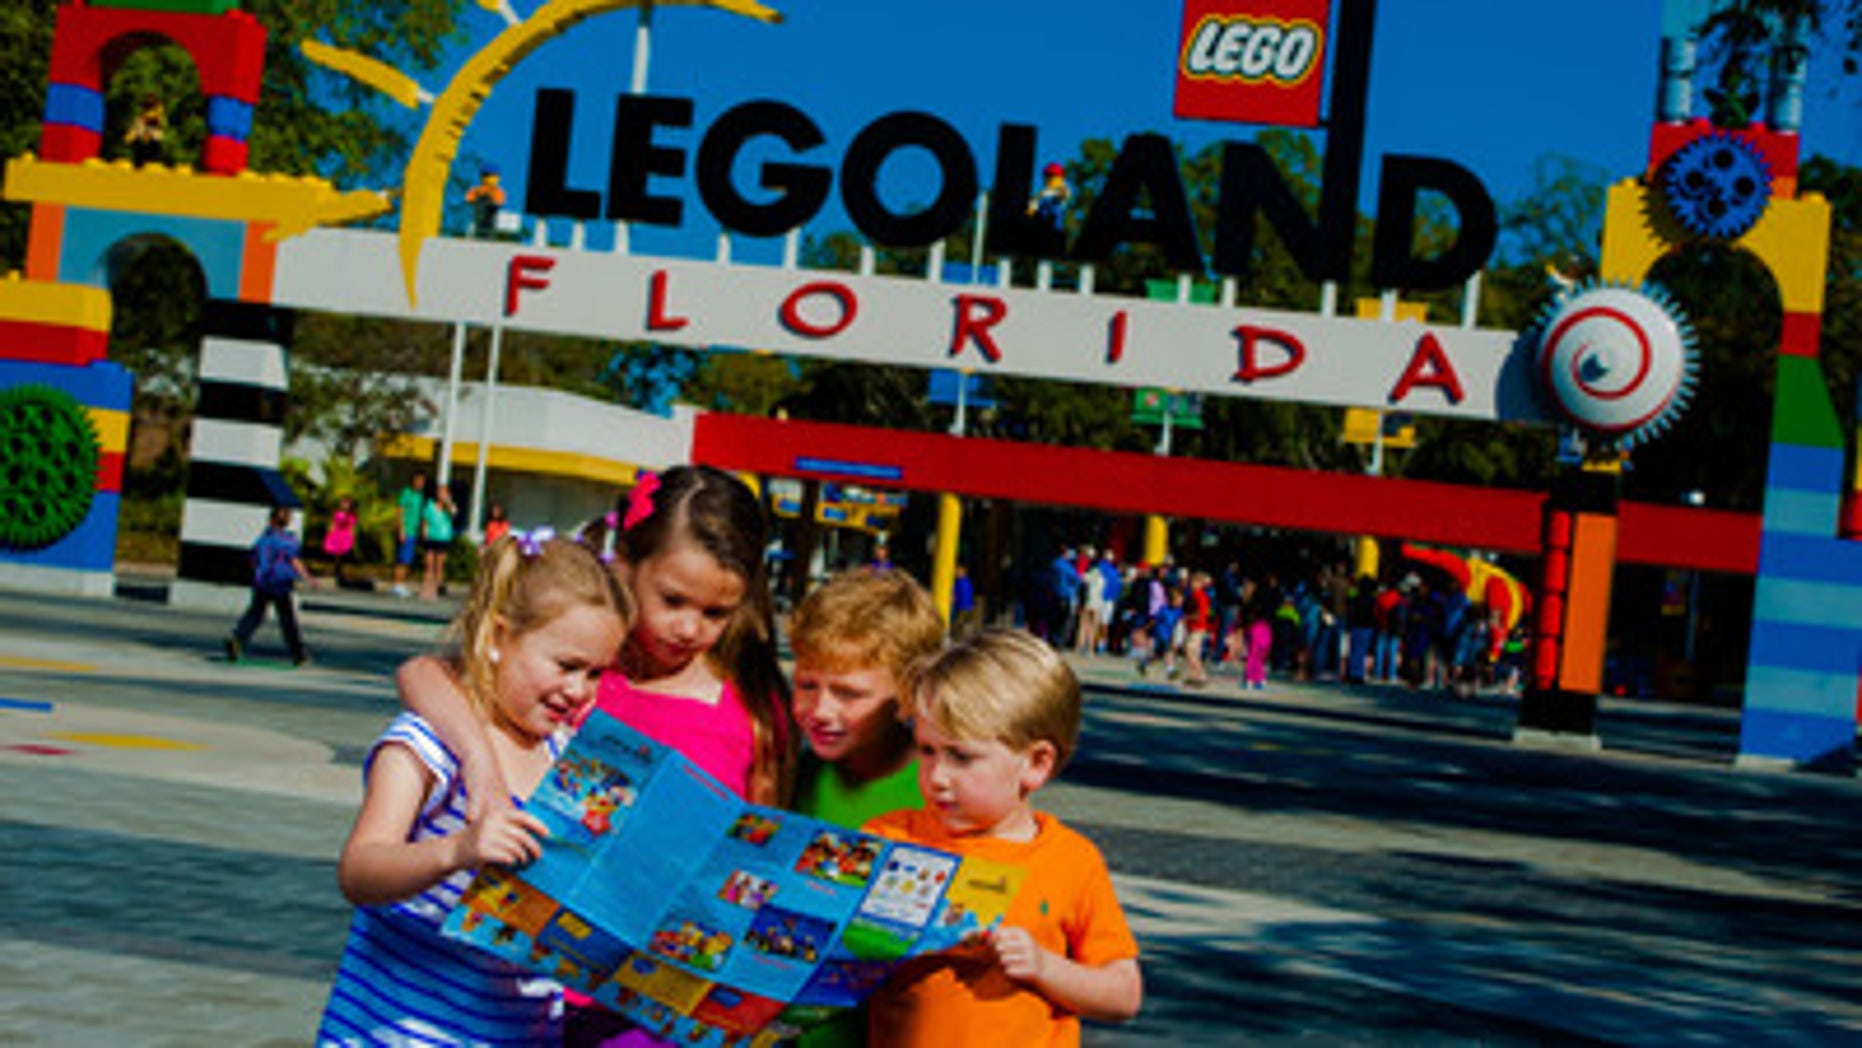 Checking out the scene at LEGOLAND.